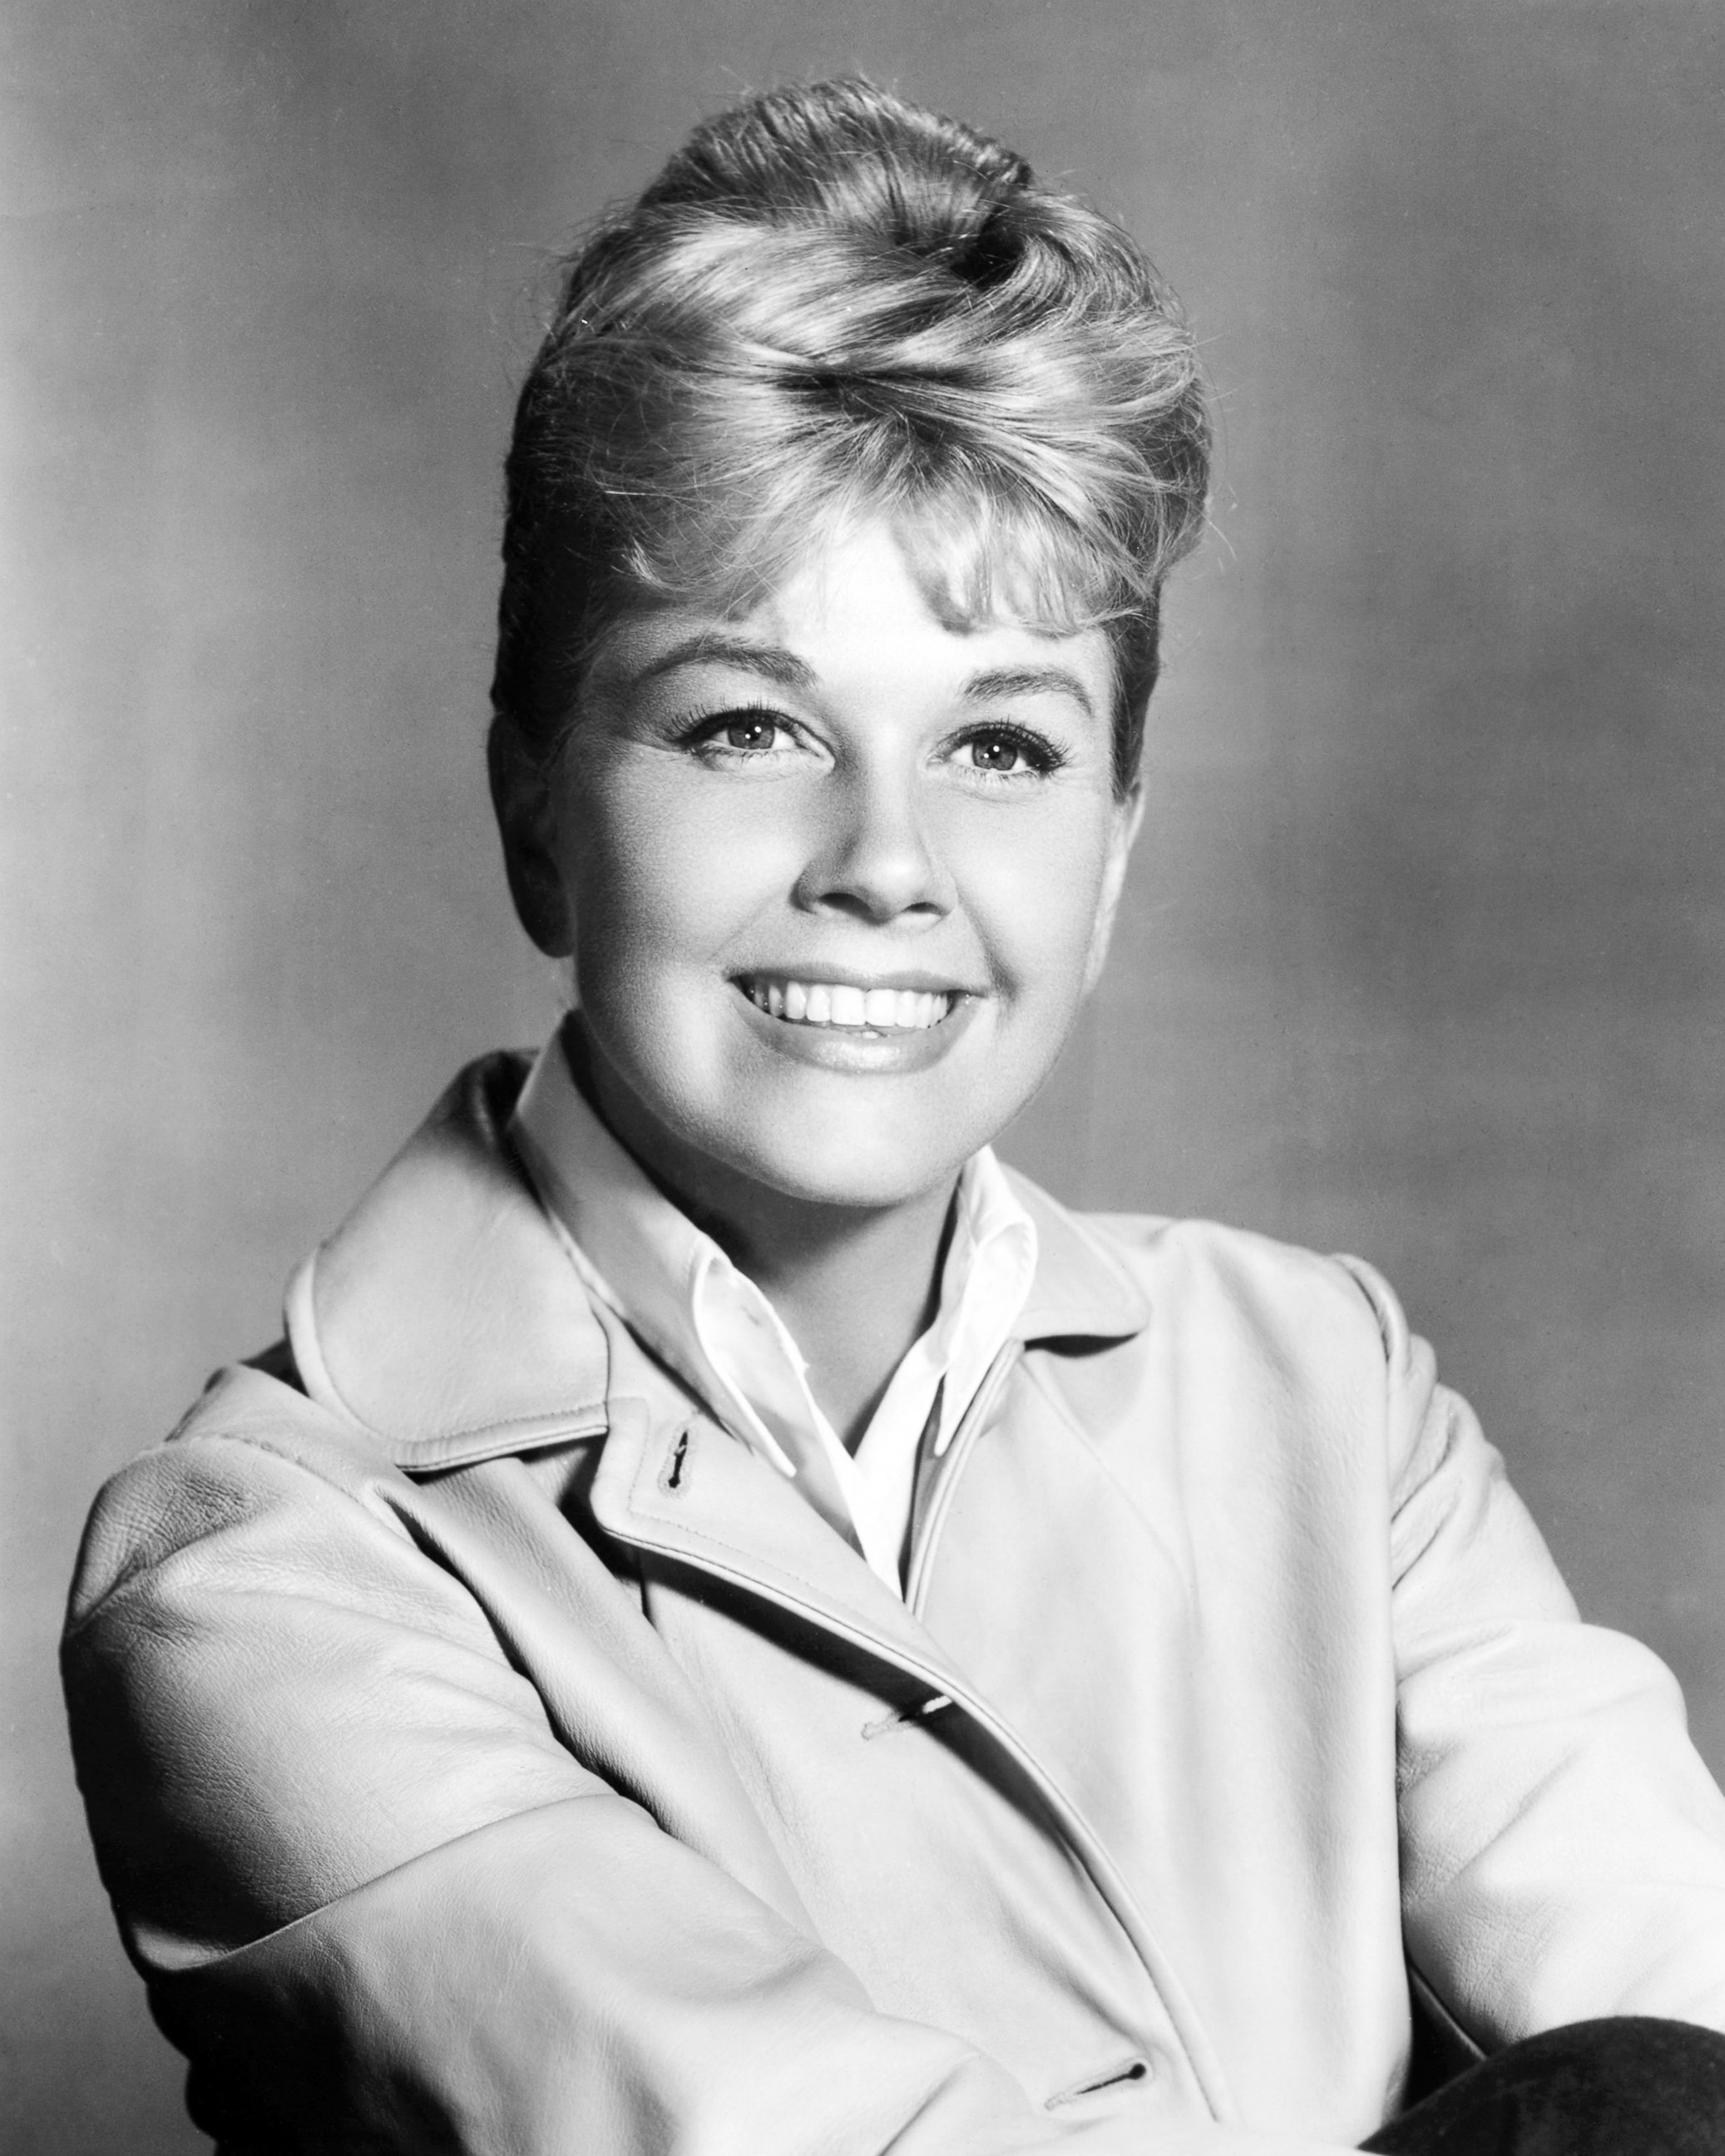 Doris Day Videos At Abc News Video Archive At Abcnews Com